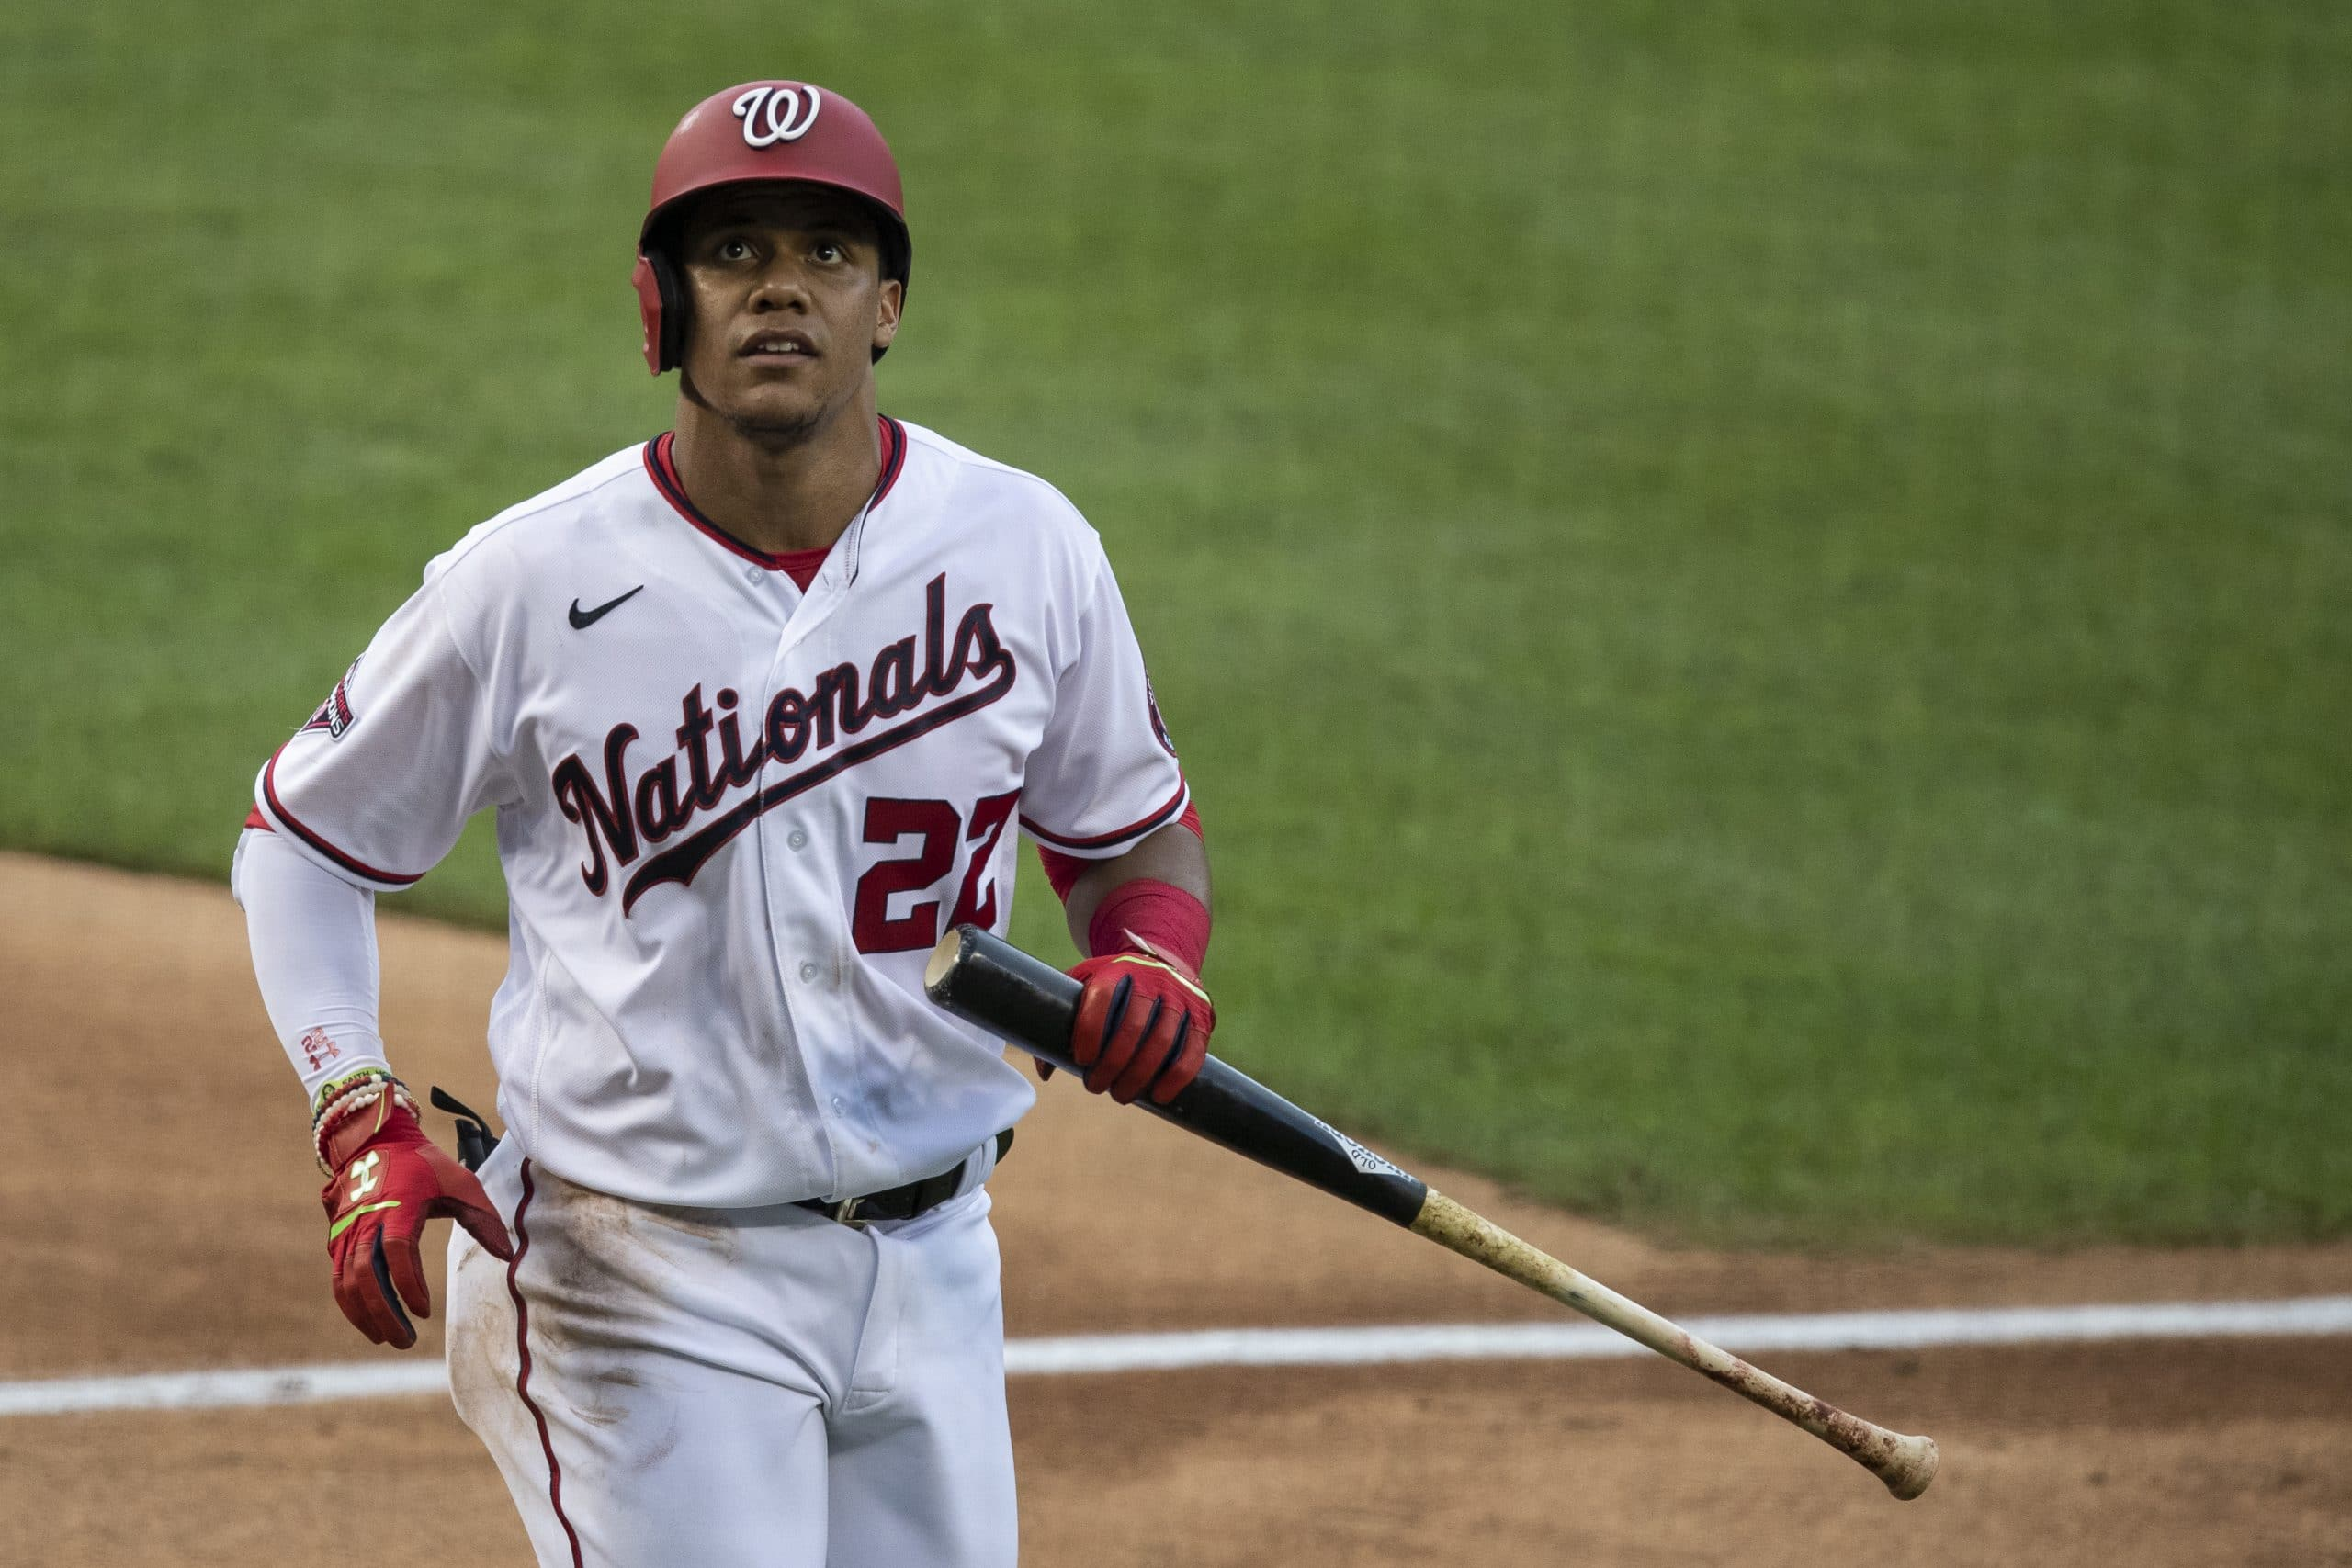 Juan Soto is not happy with the Nationals after the